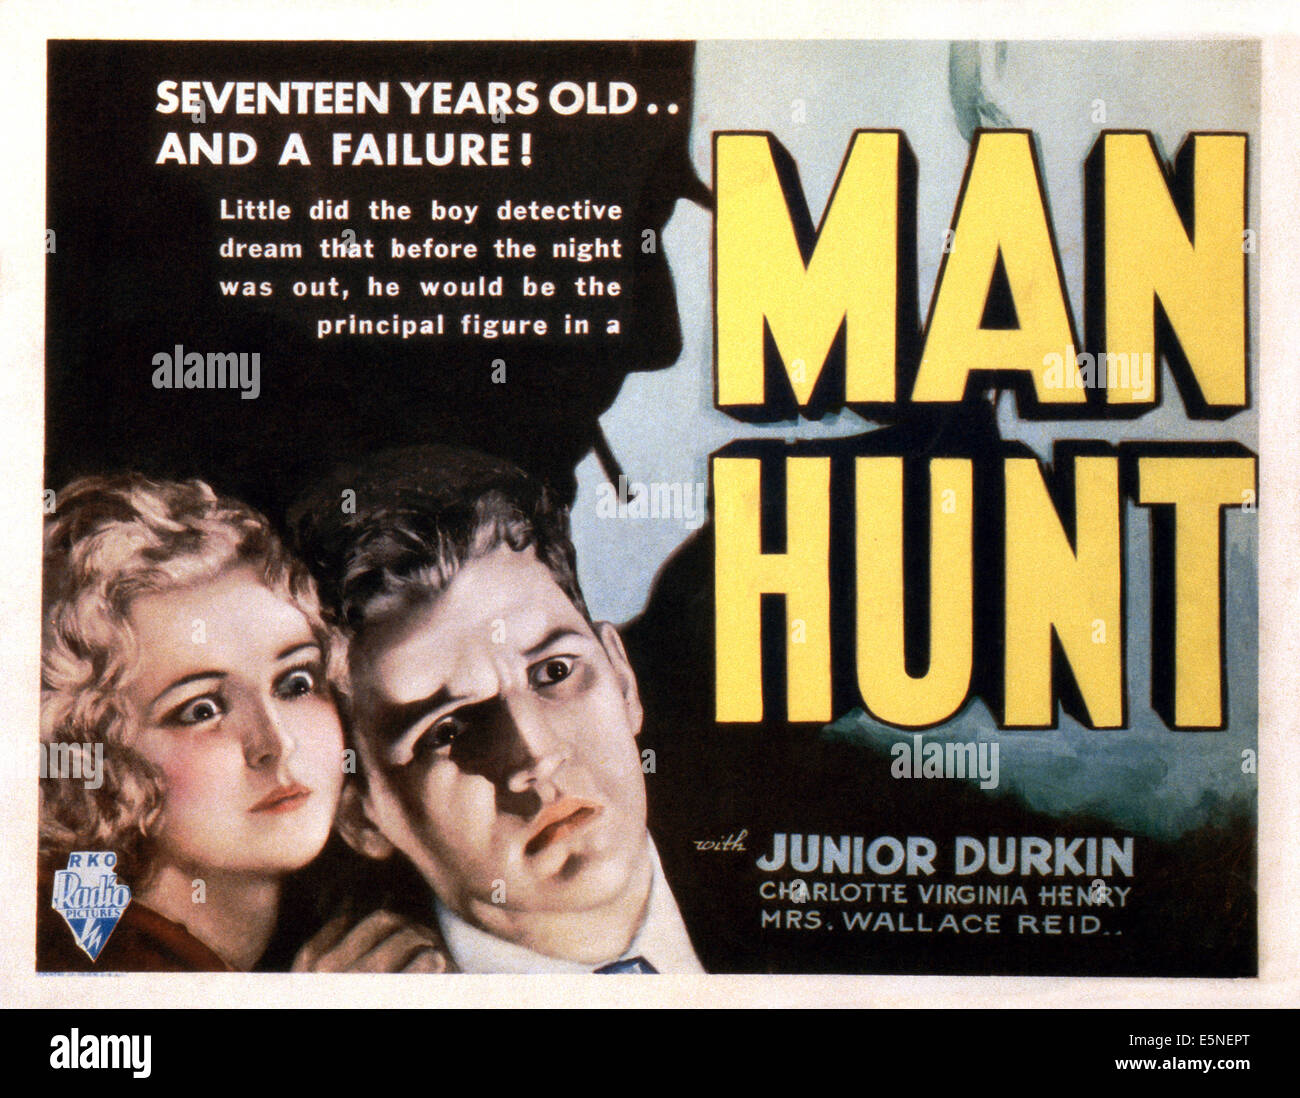 henry hunt stock photos henry hunt stock images alamy man hunt from left charlotte henry junior durkin 1933 stock image